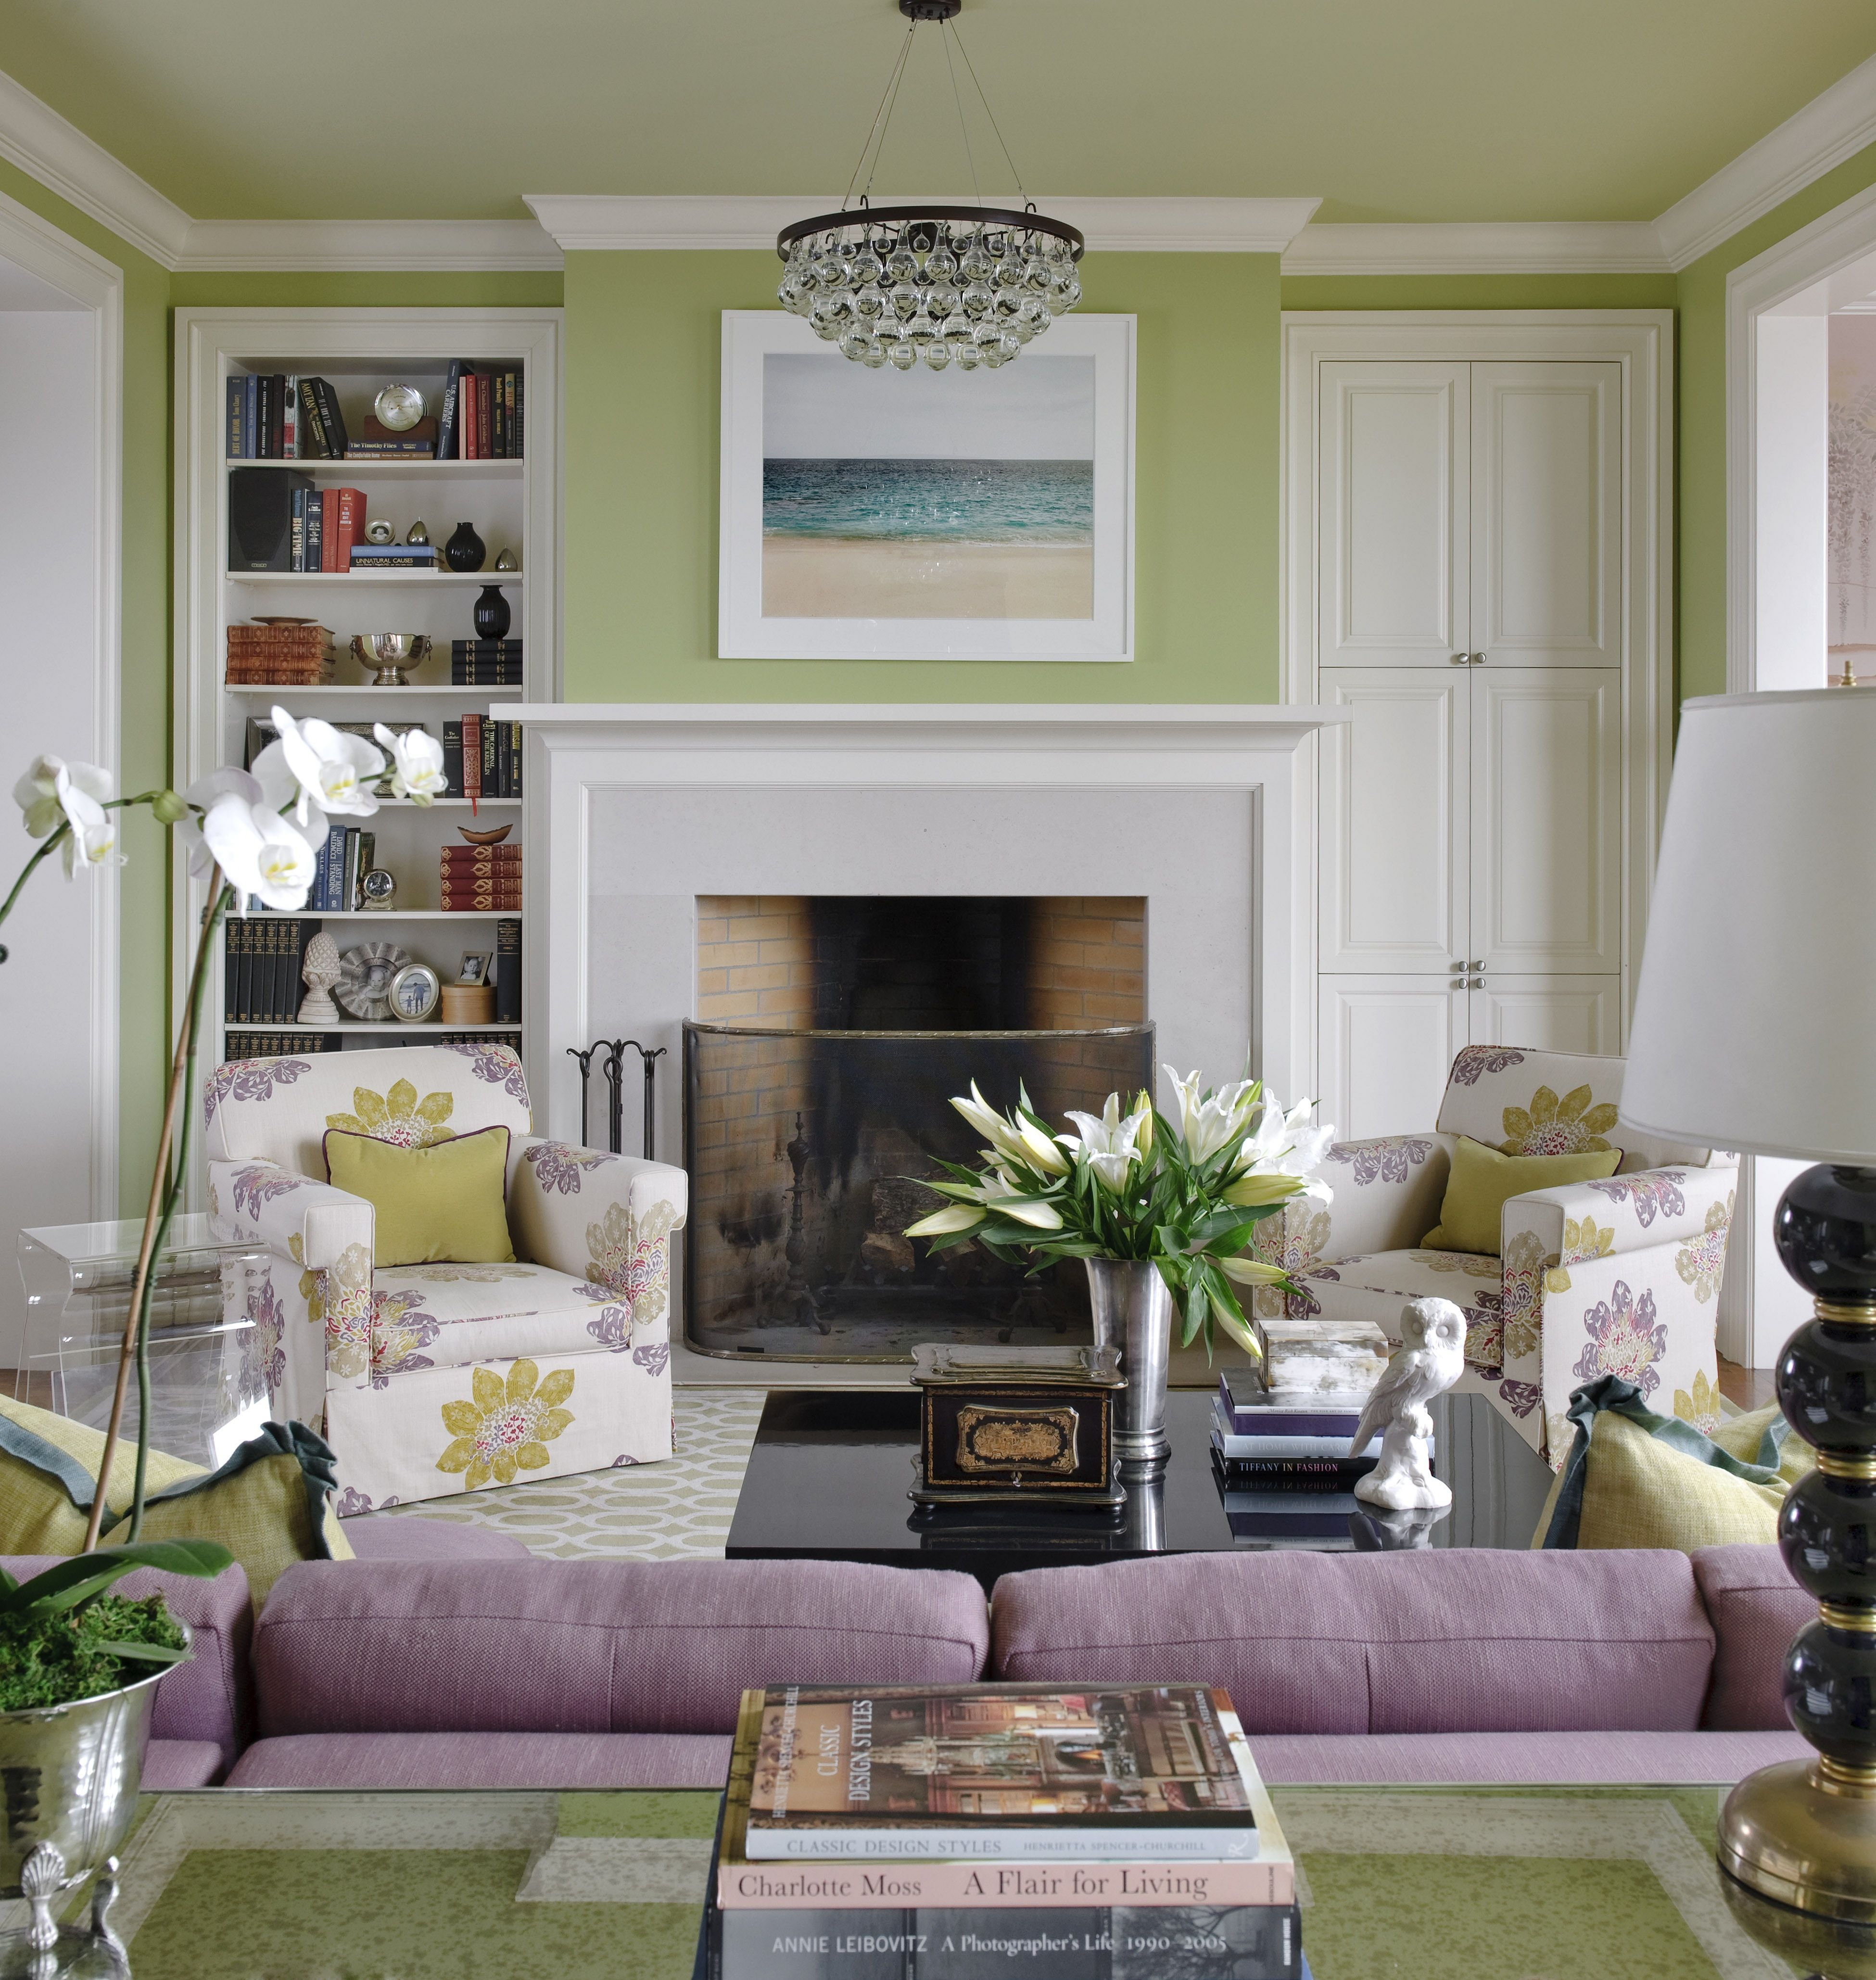 15 Awesome Living Room Green And Purple Interior Color Ideas Grey